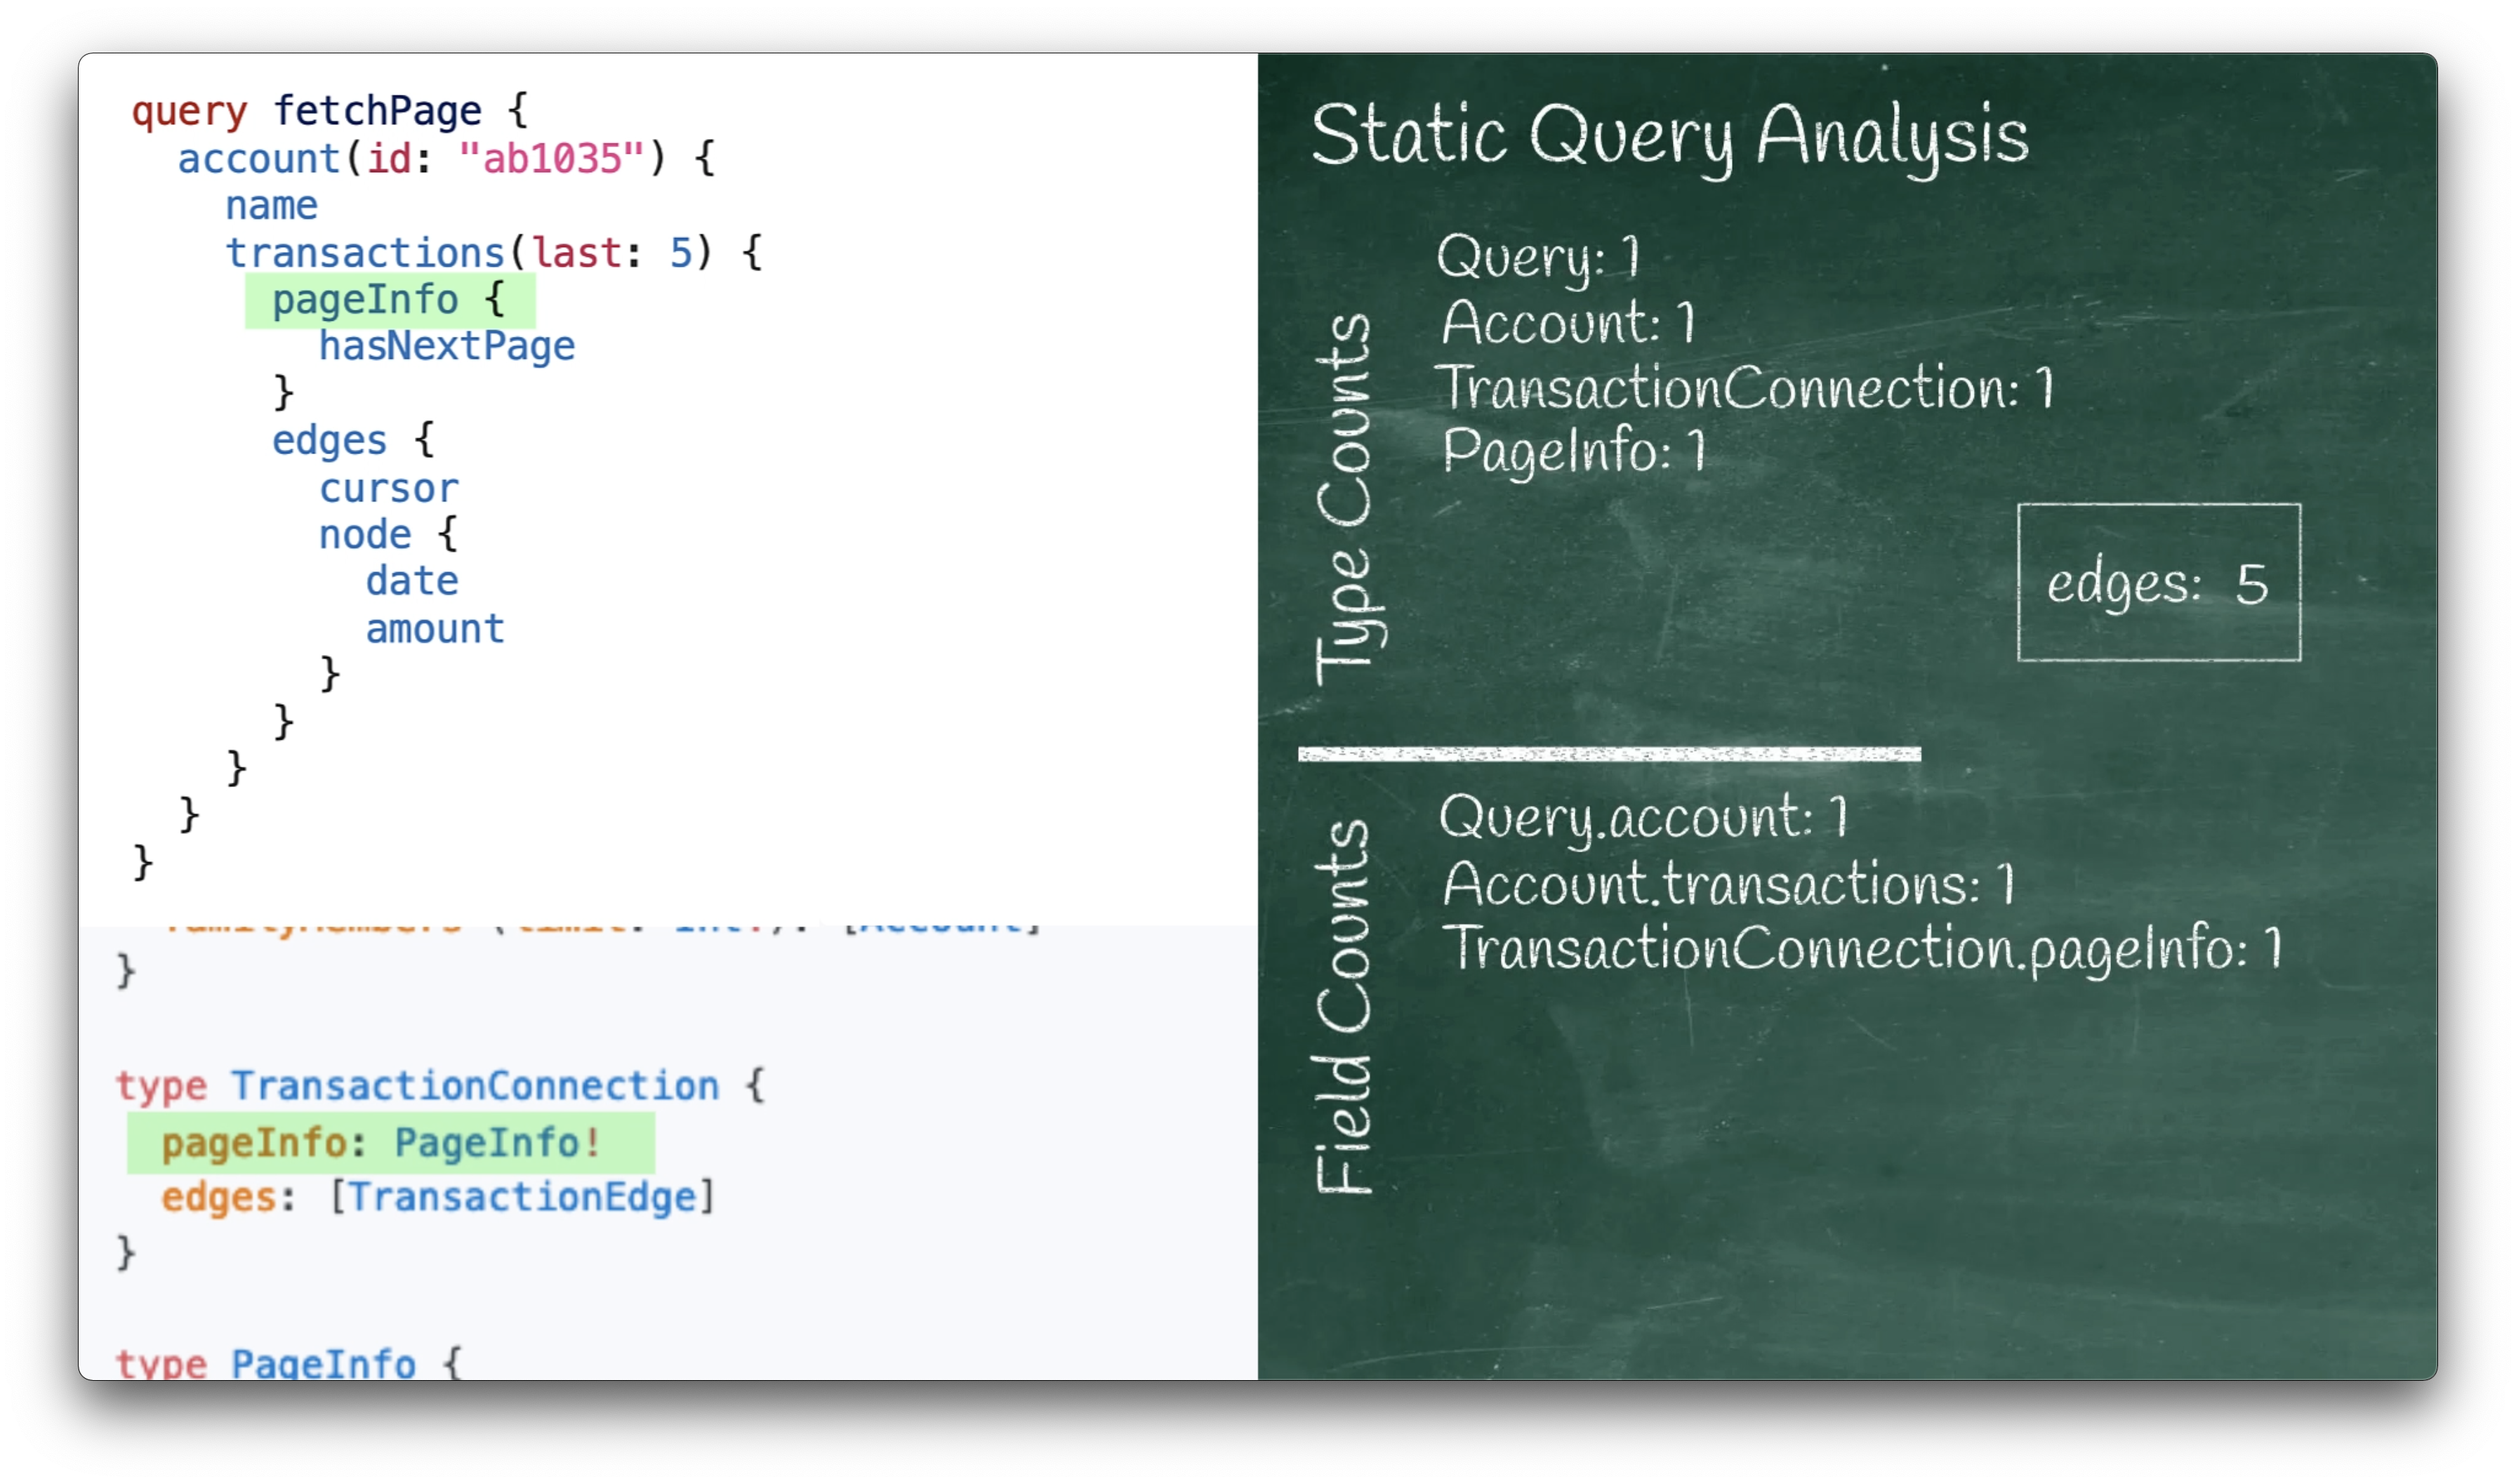 Static Query Analysis Timestep 5